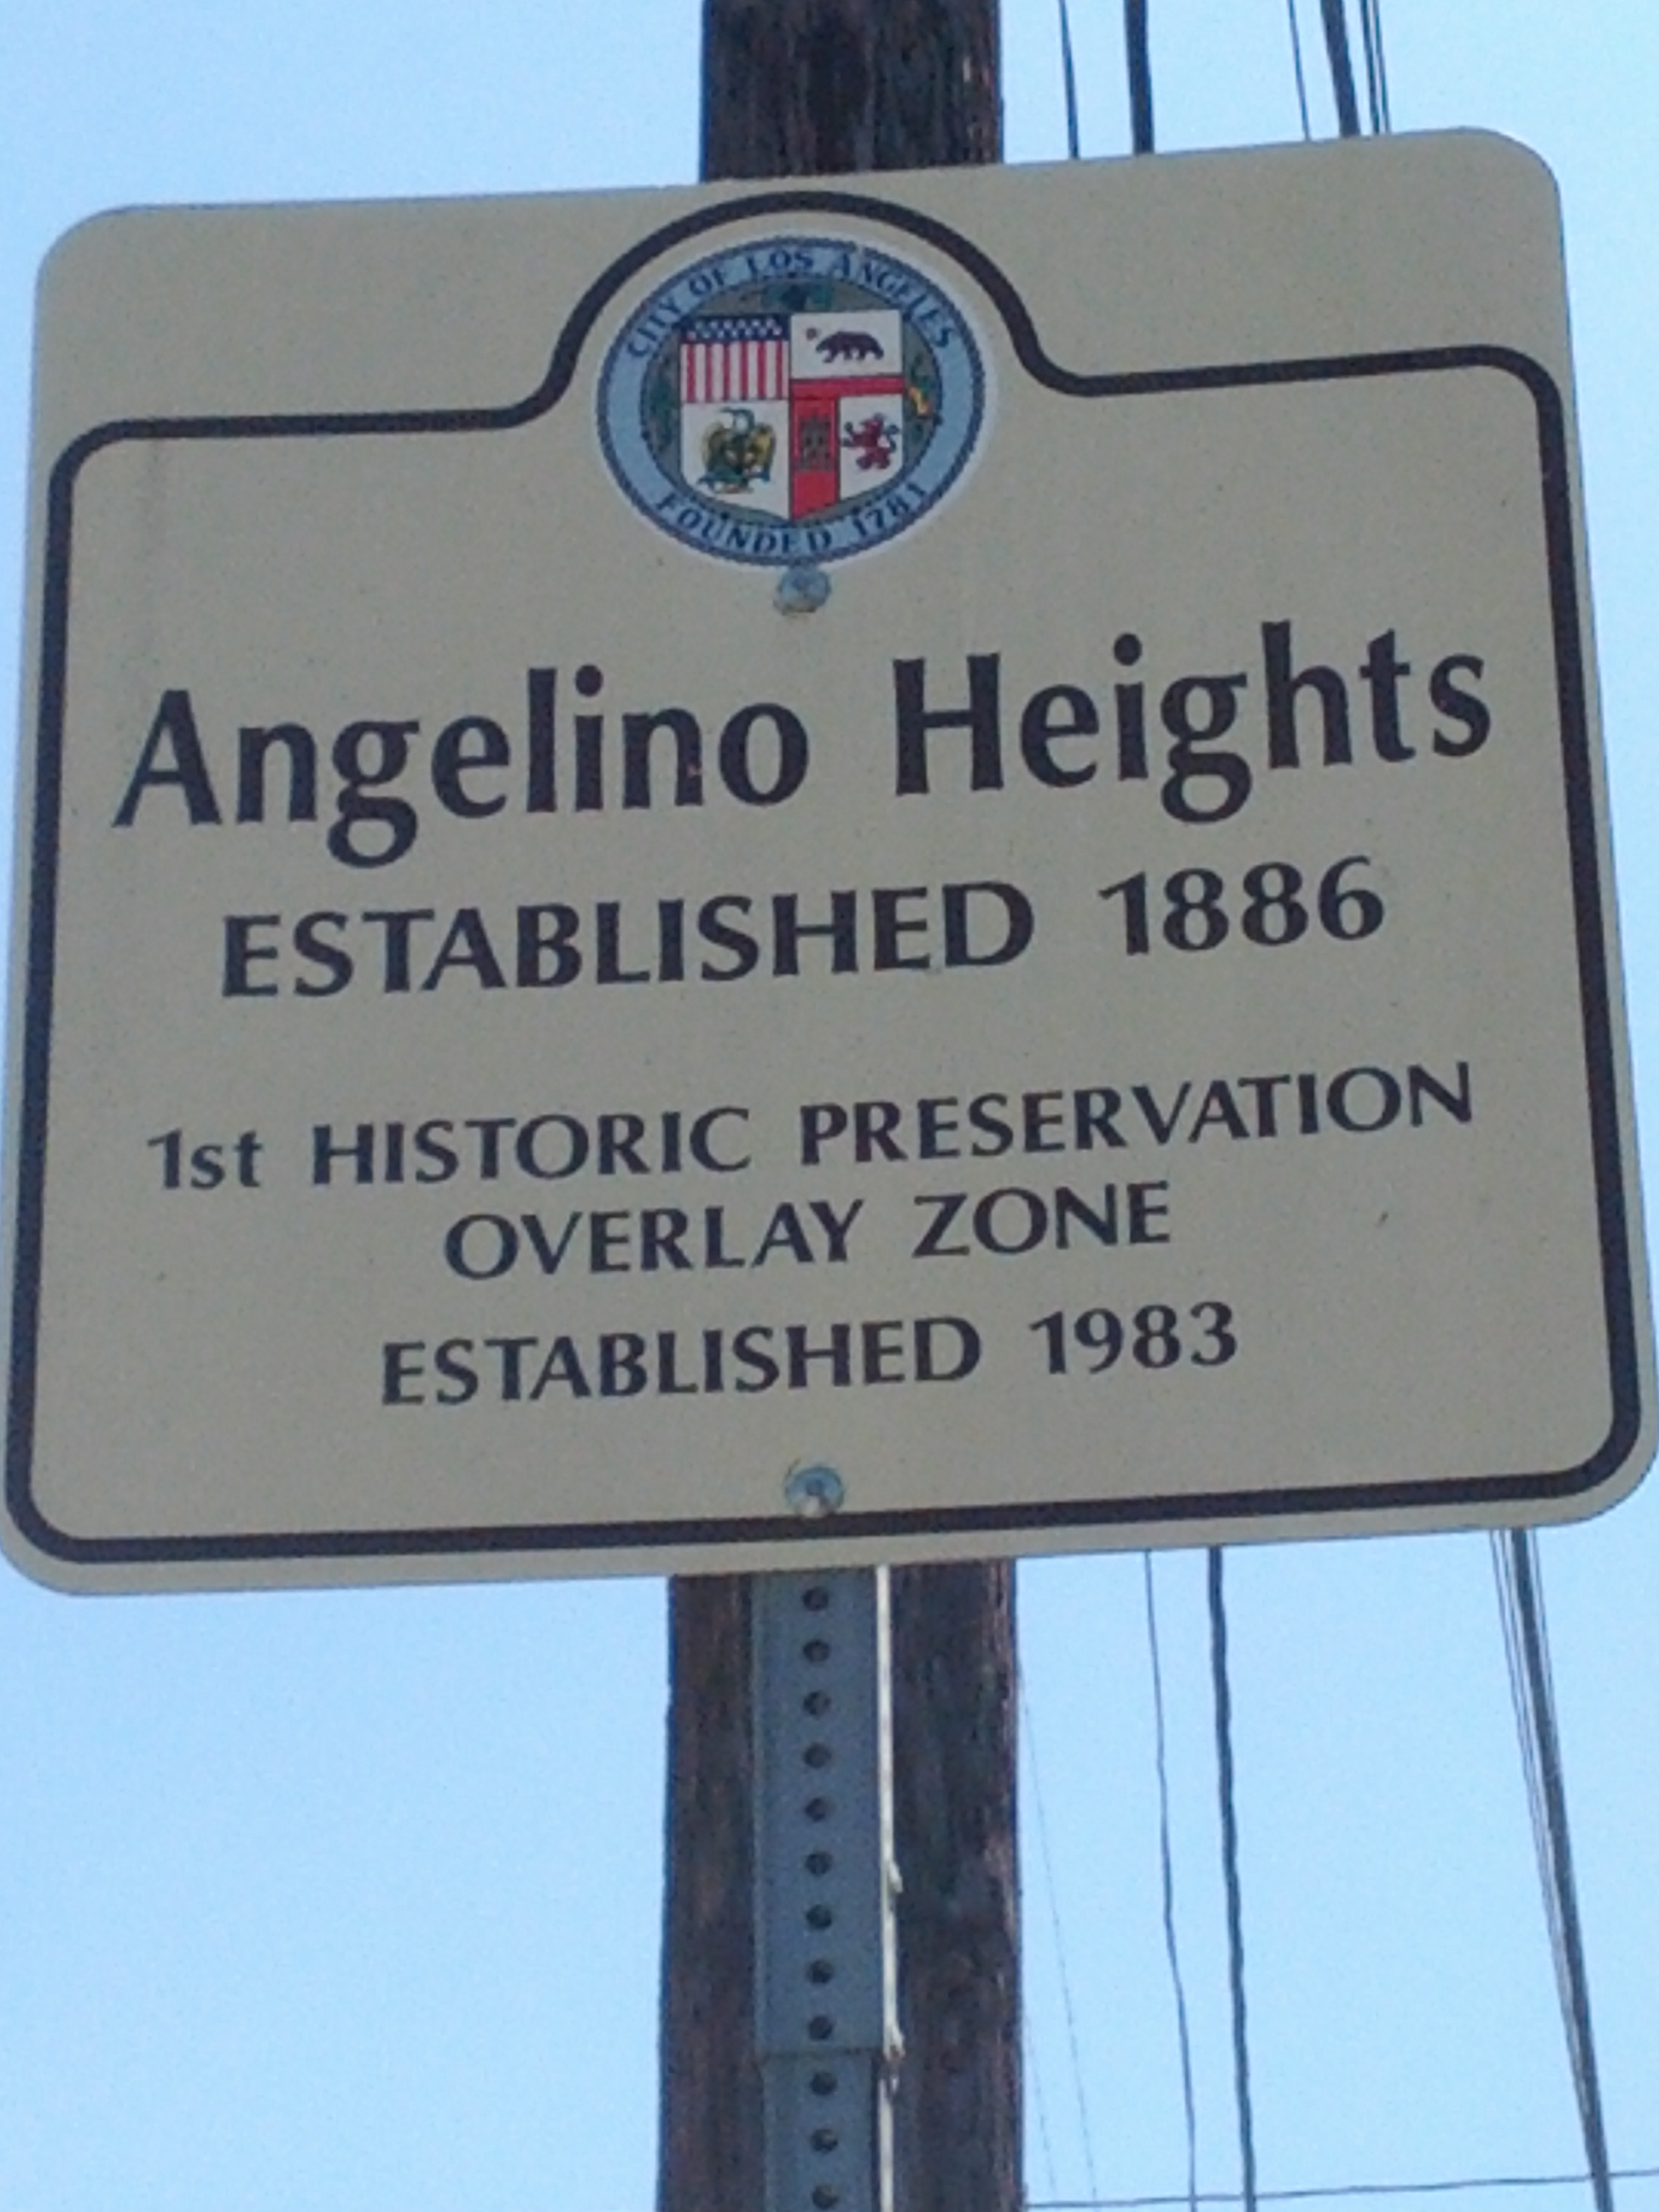 Angelino Heights, est. 1886, 1st historic preservation overlay zone est 1983